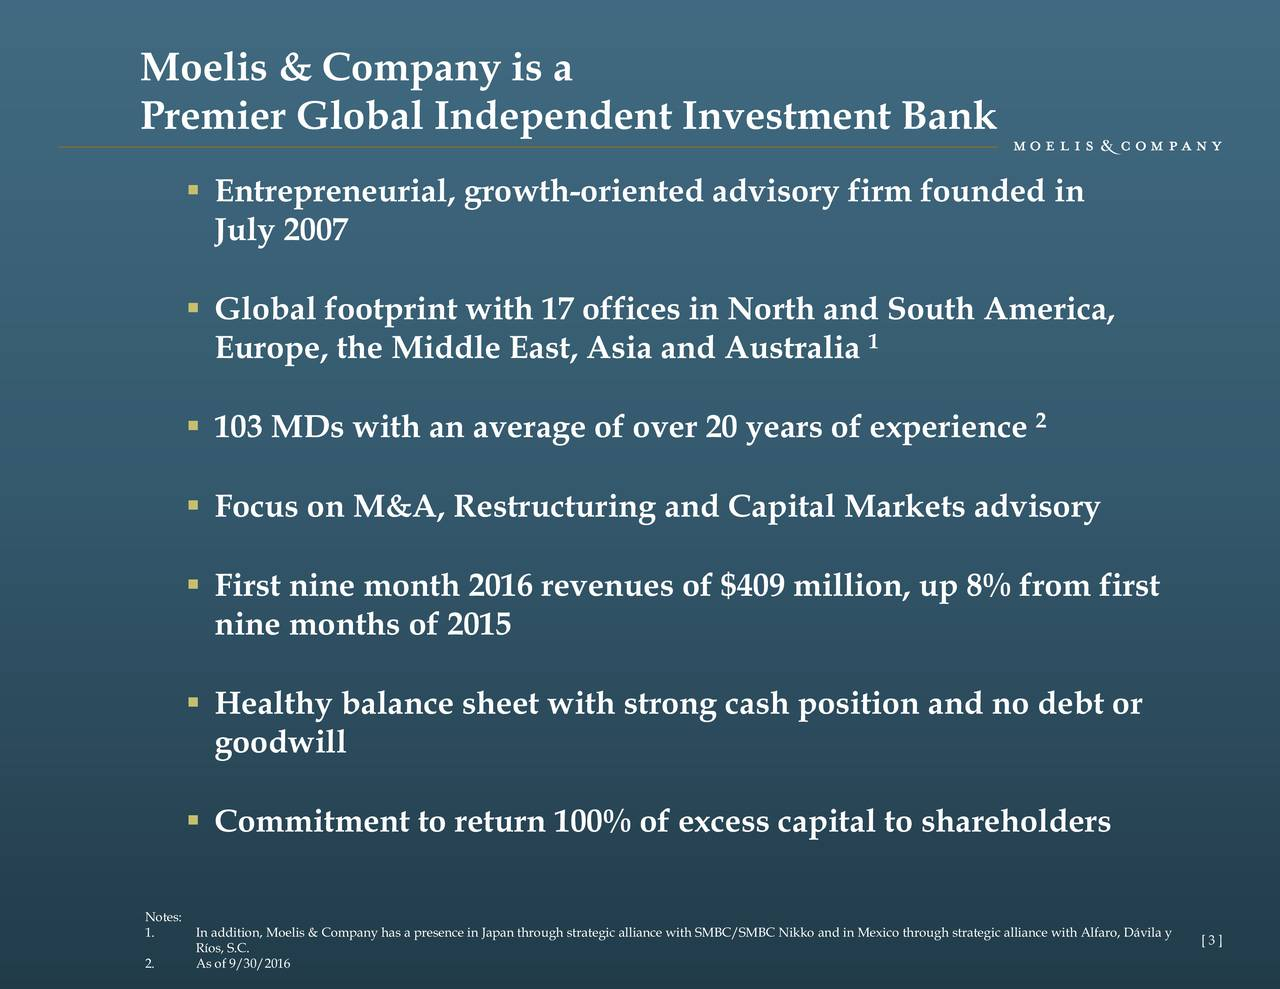 Moelis & Company 2016 Q3 - Results - Earnings Call Slides